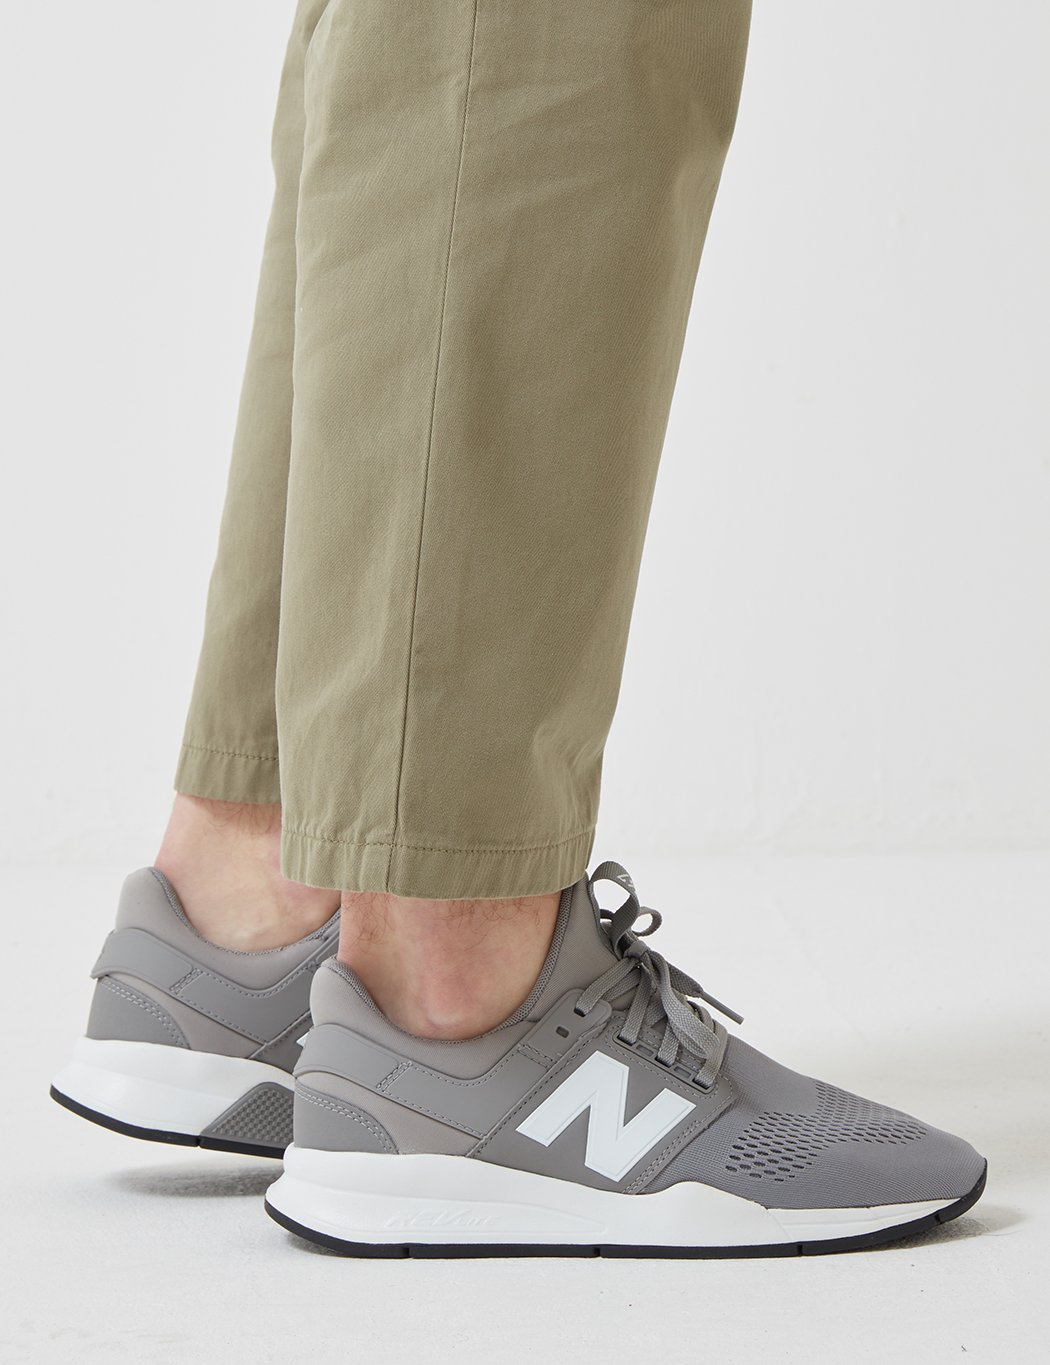 New Balance 247 Sport Core Plus Trainers - Grey/Teal